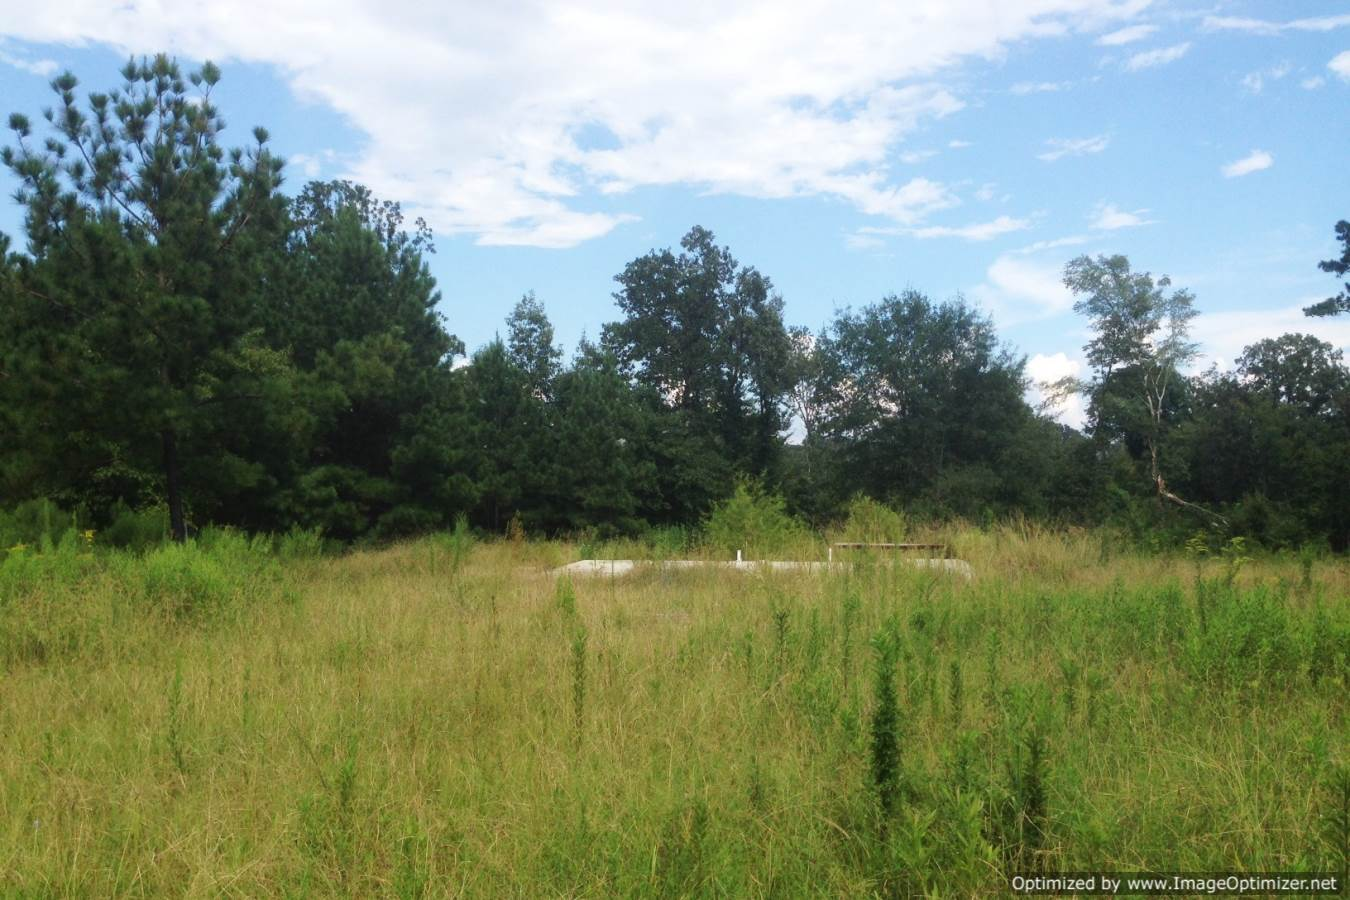 Mississippi rankin county sandhill - Rankin County Ms Residential Lot For Sale